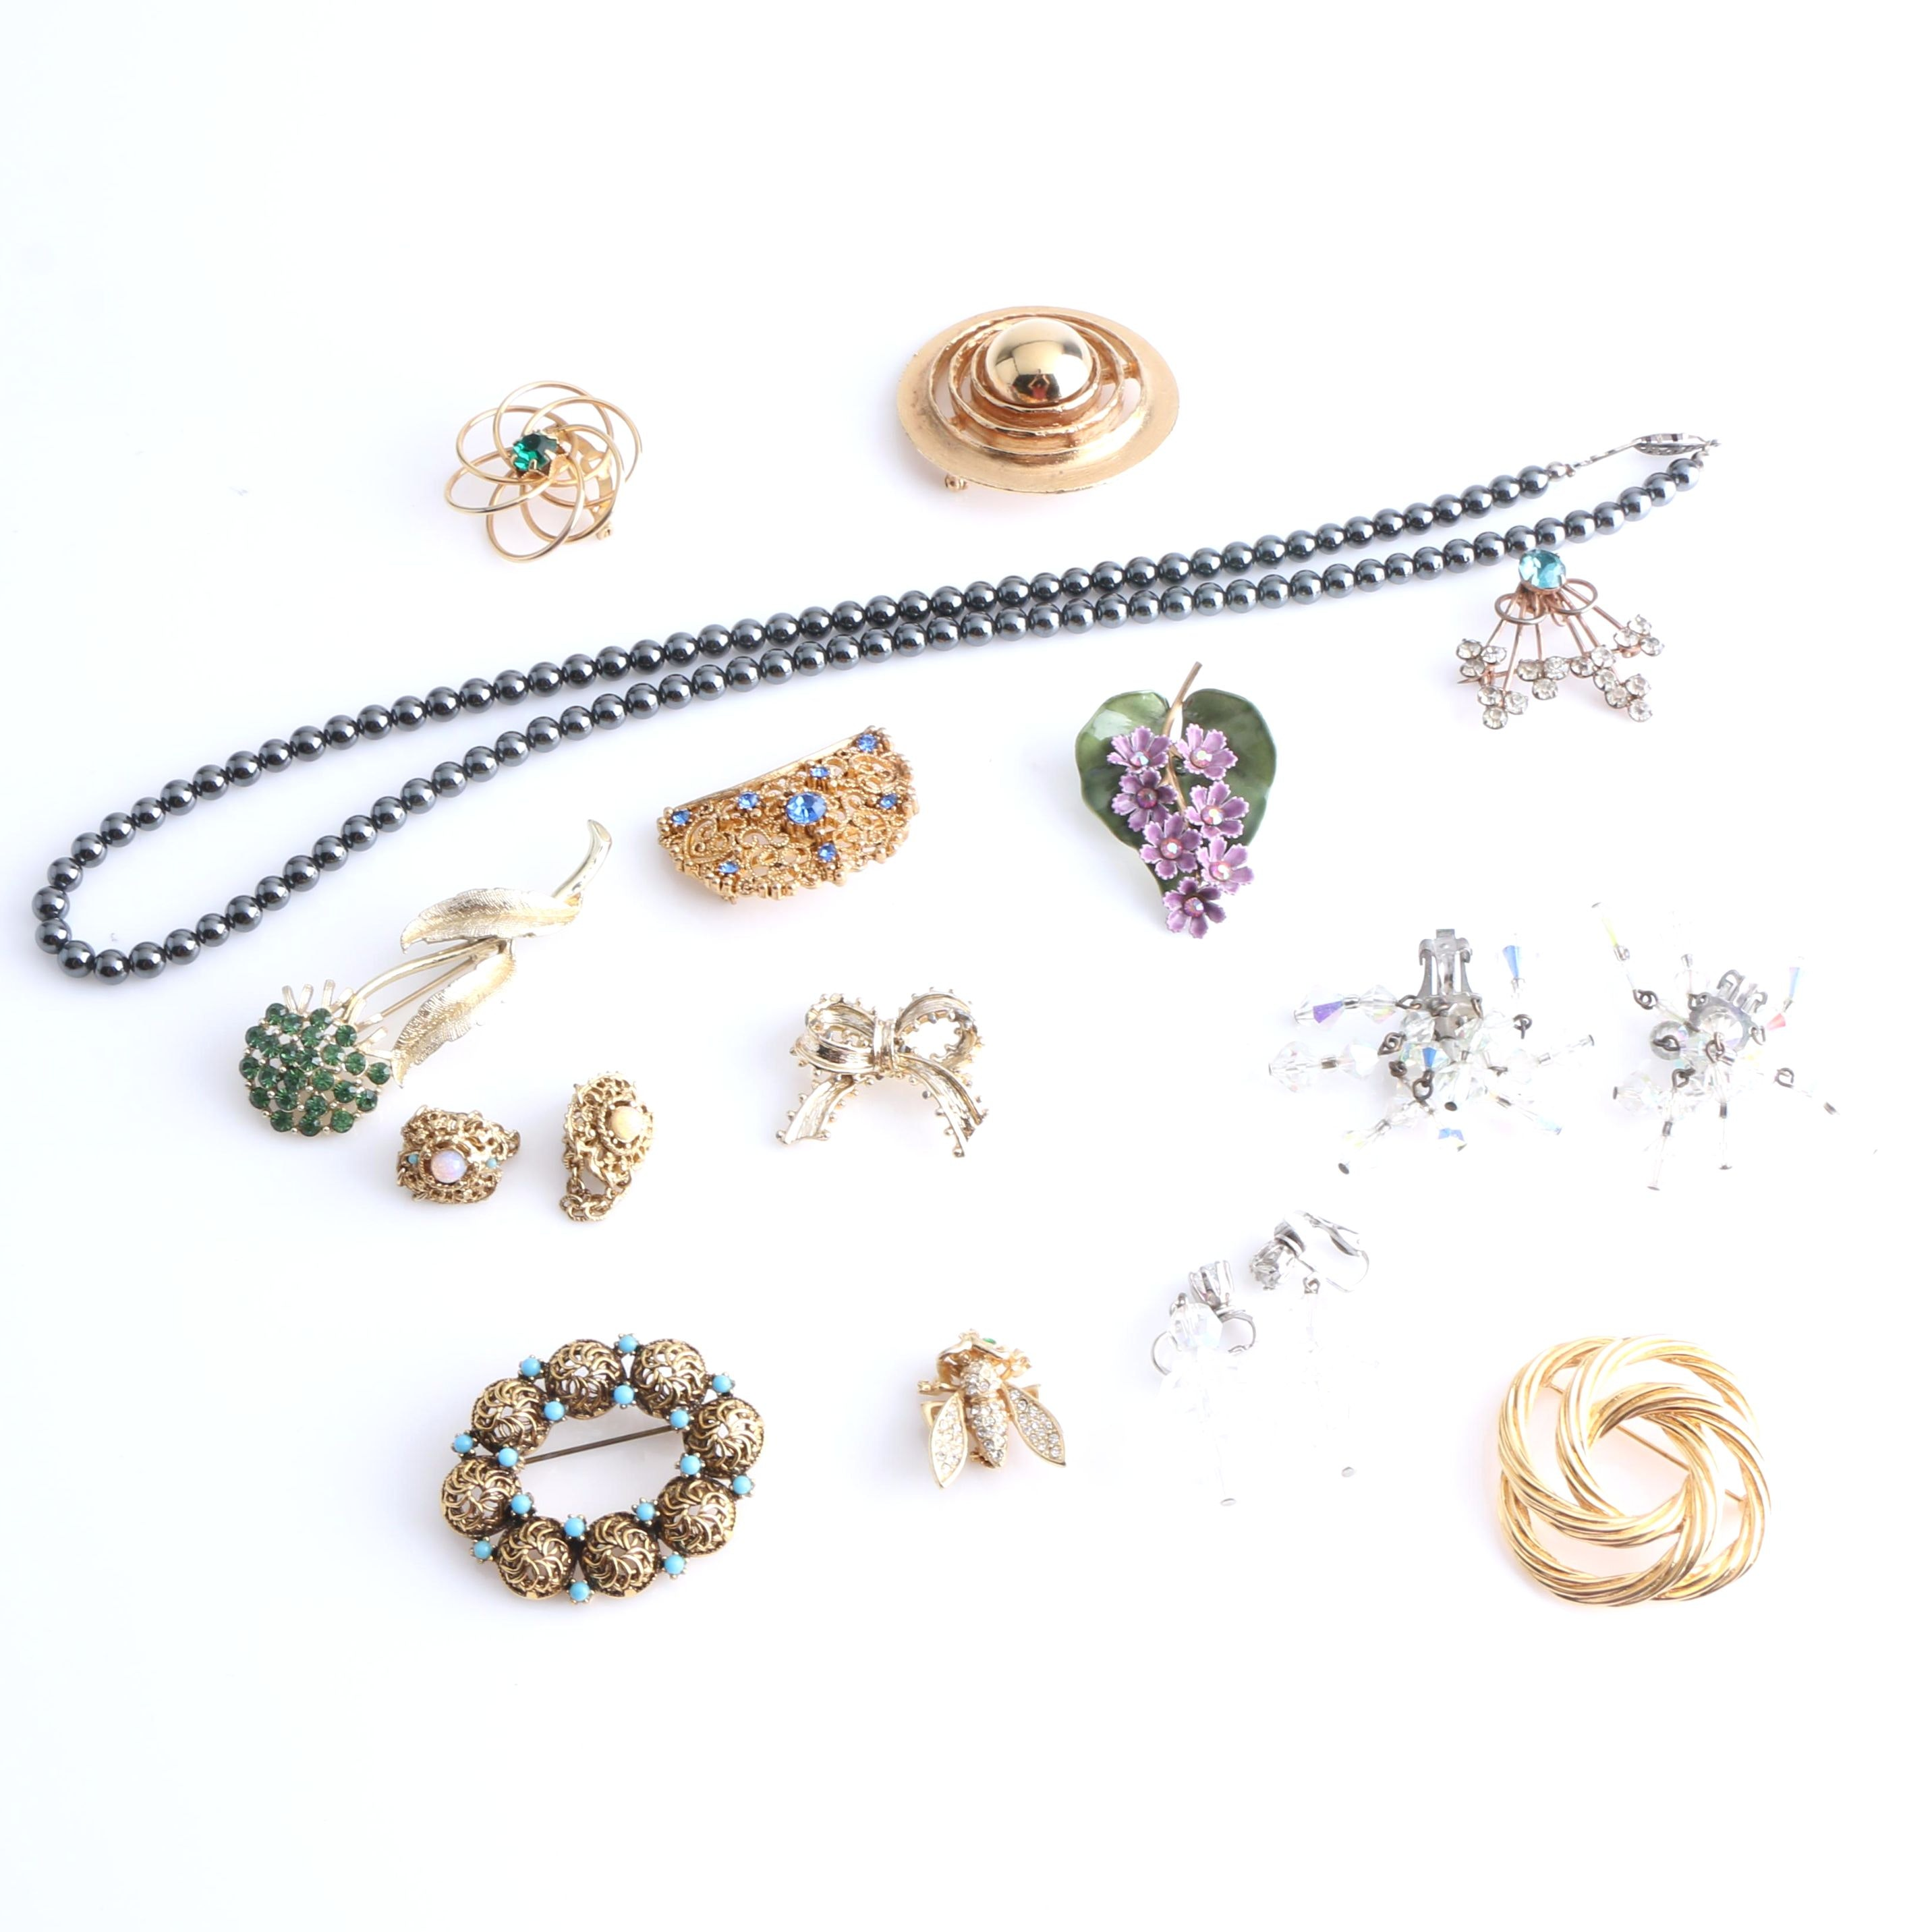 Assortment of Costume Jewelry Including a Coro and Sterling Silver Brooch